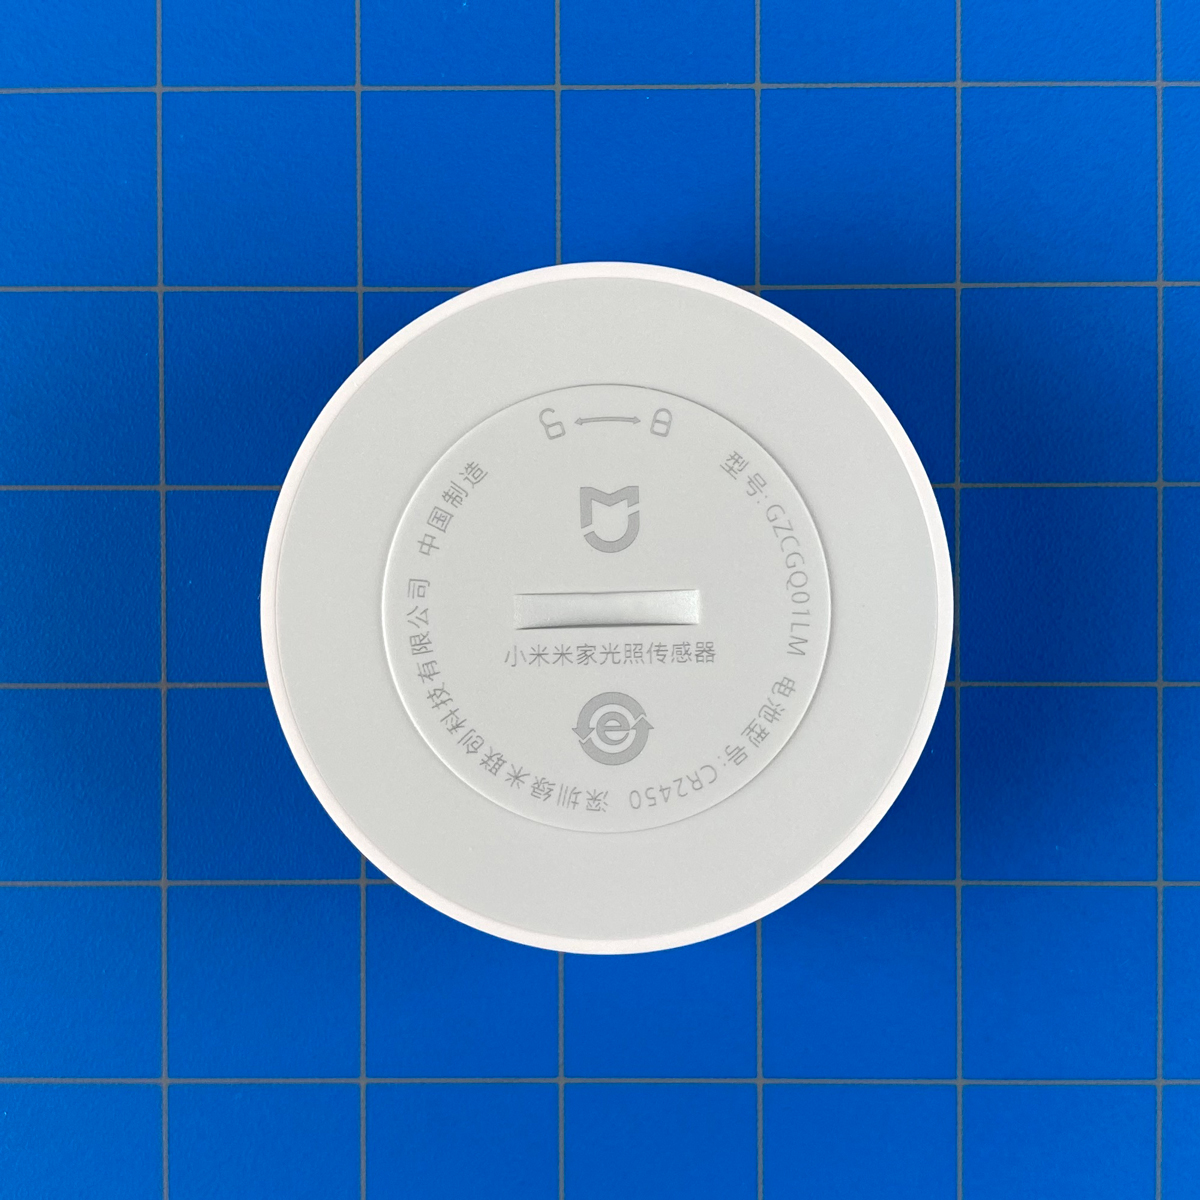 Xiaomi Mi Light Sensor review